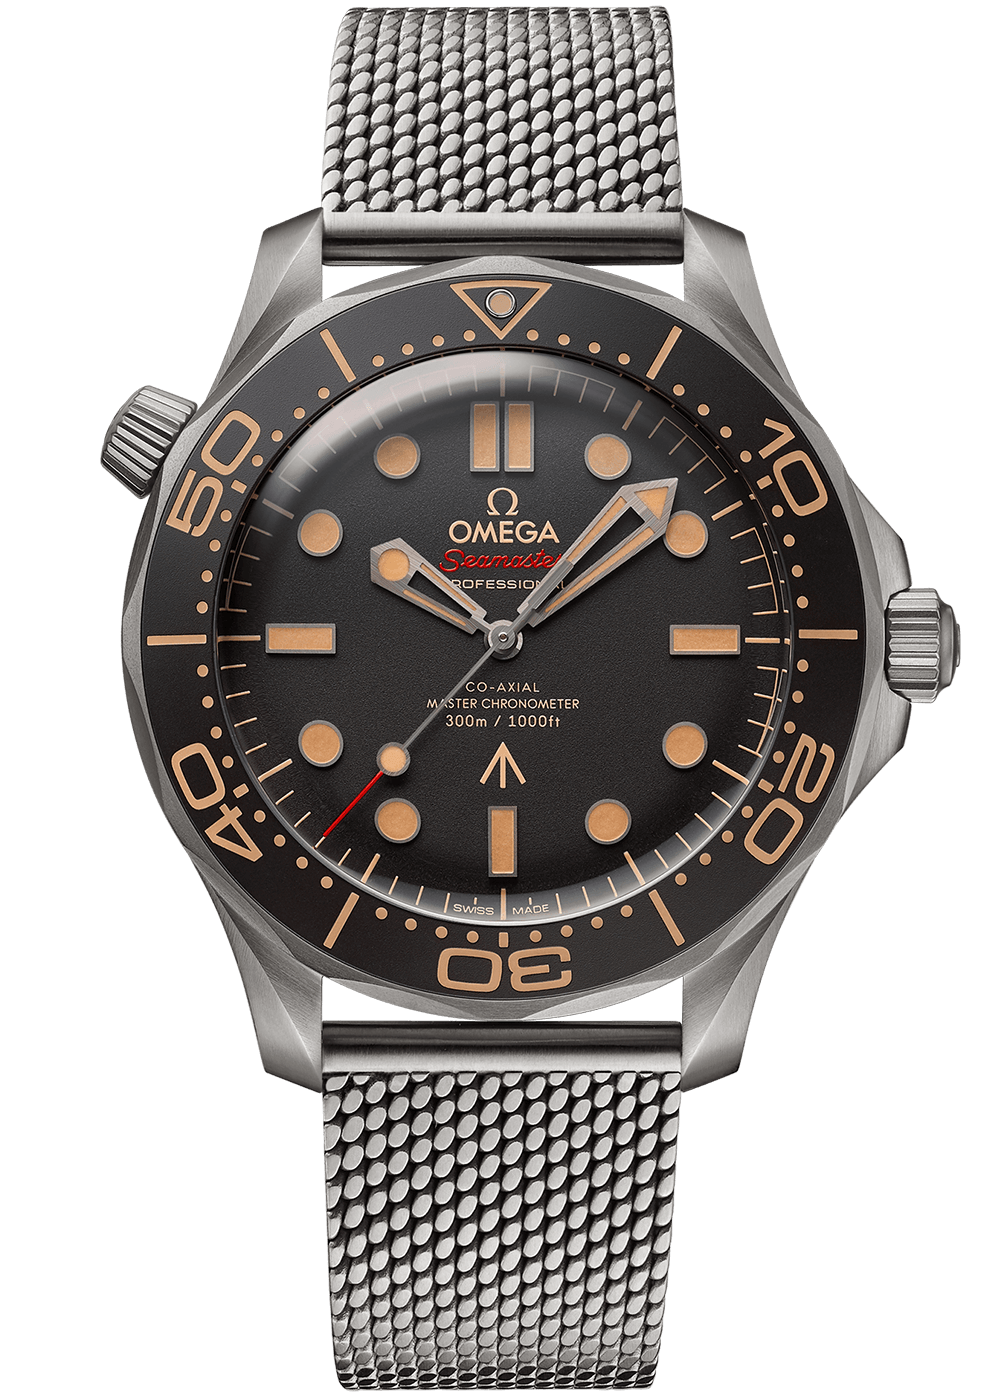 omega-seamaster-diver-007-edition